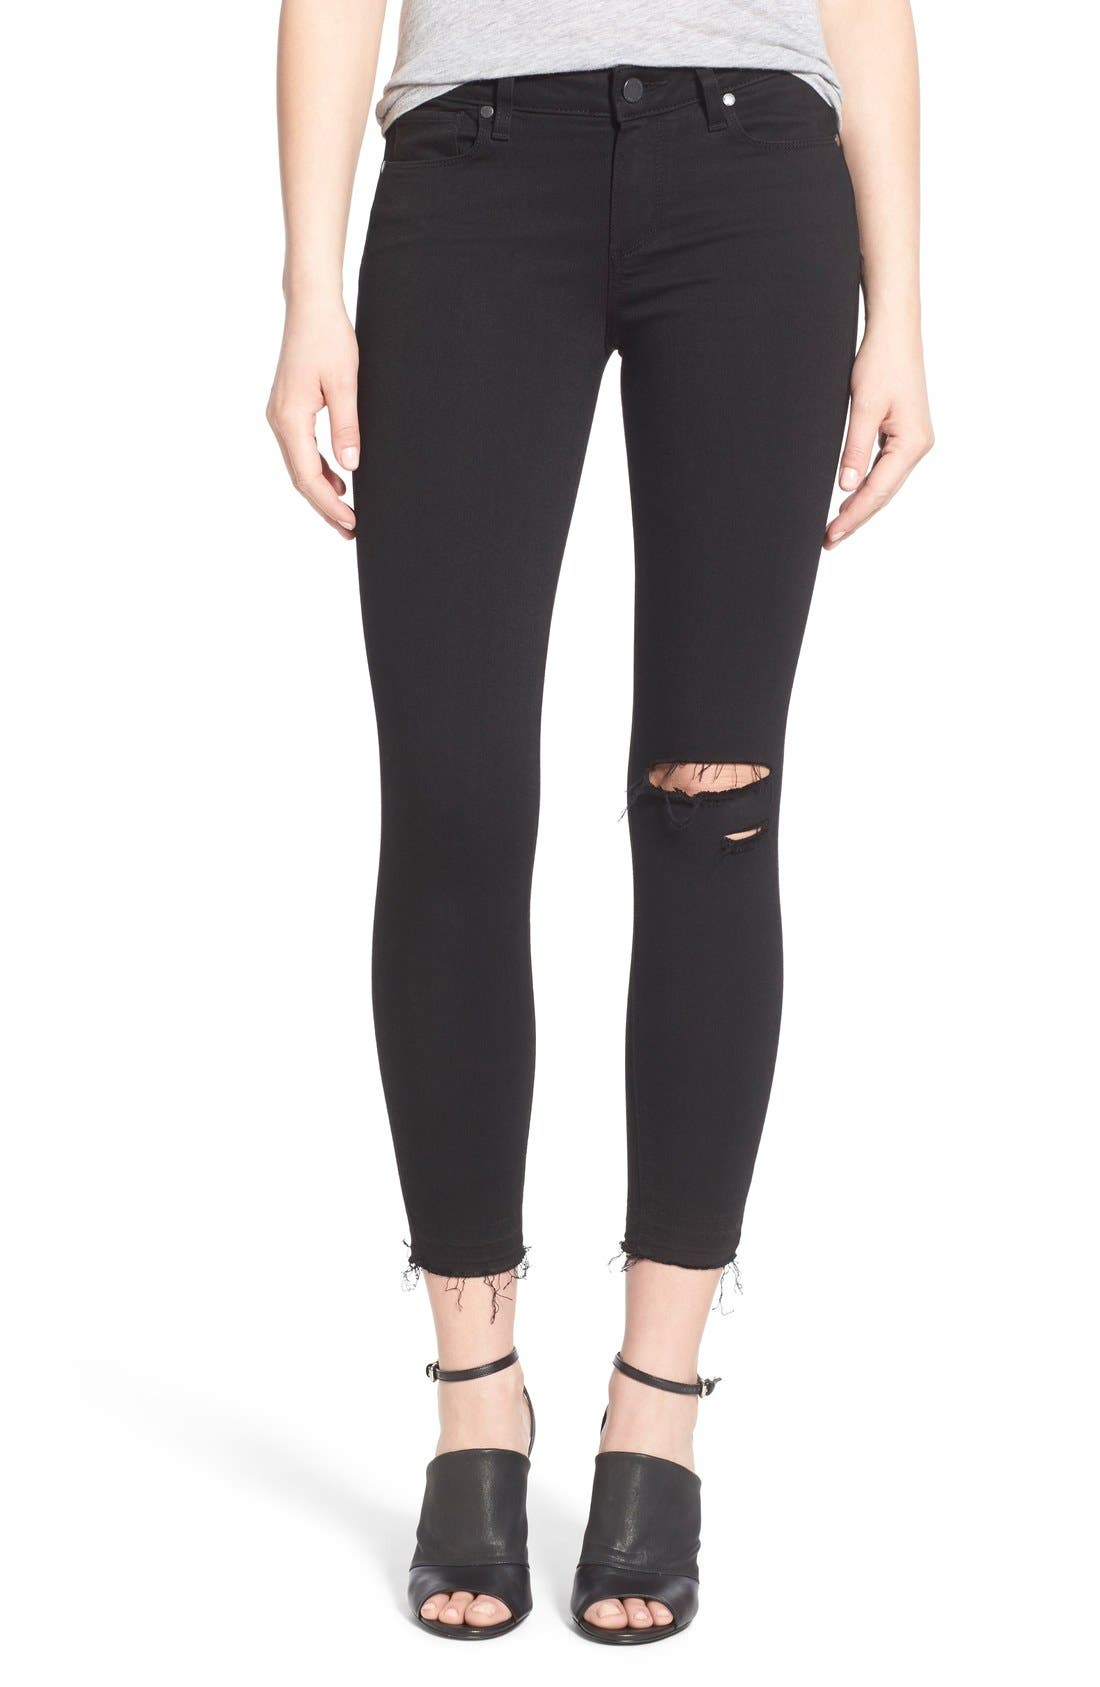 Alternate Image 1 Selected - PAIGE Transcend - Verdugo Crop Skinny Jeans (Black Destructed)